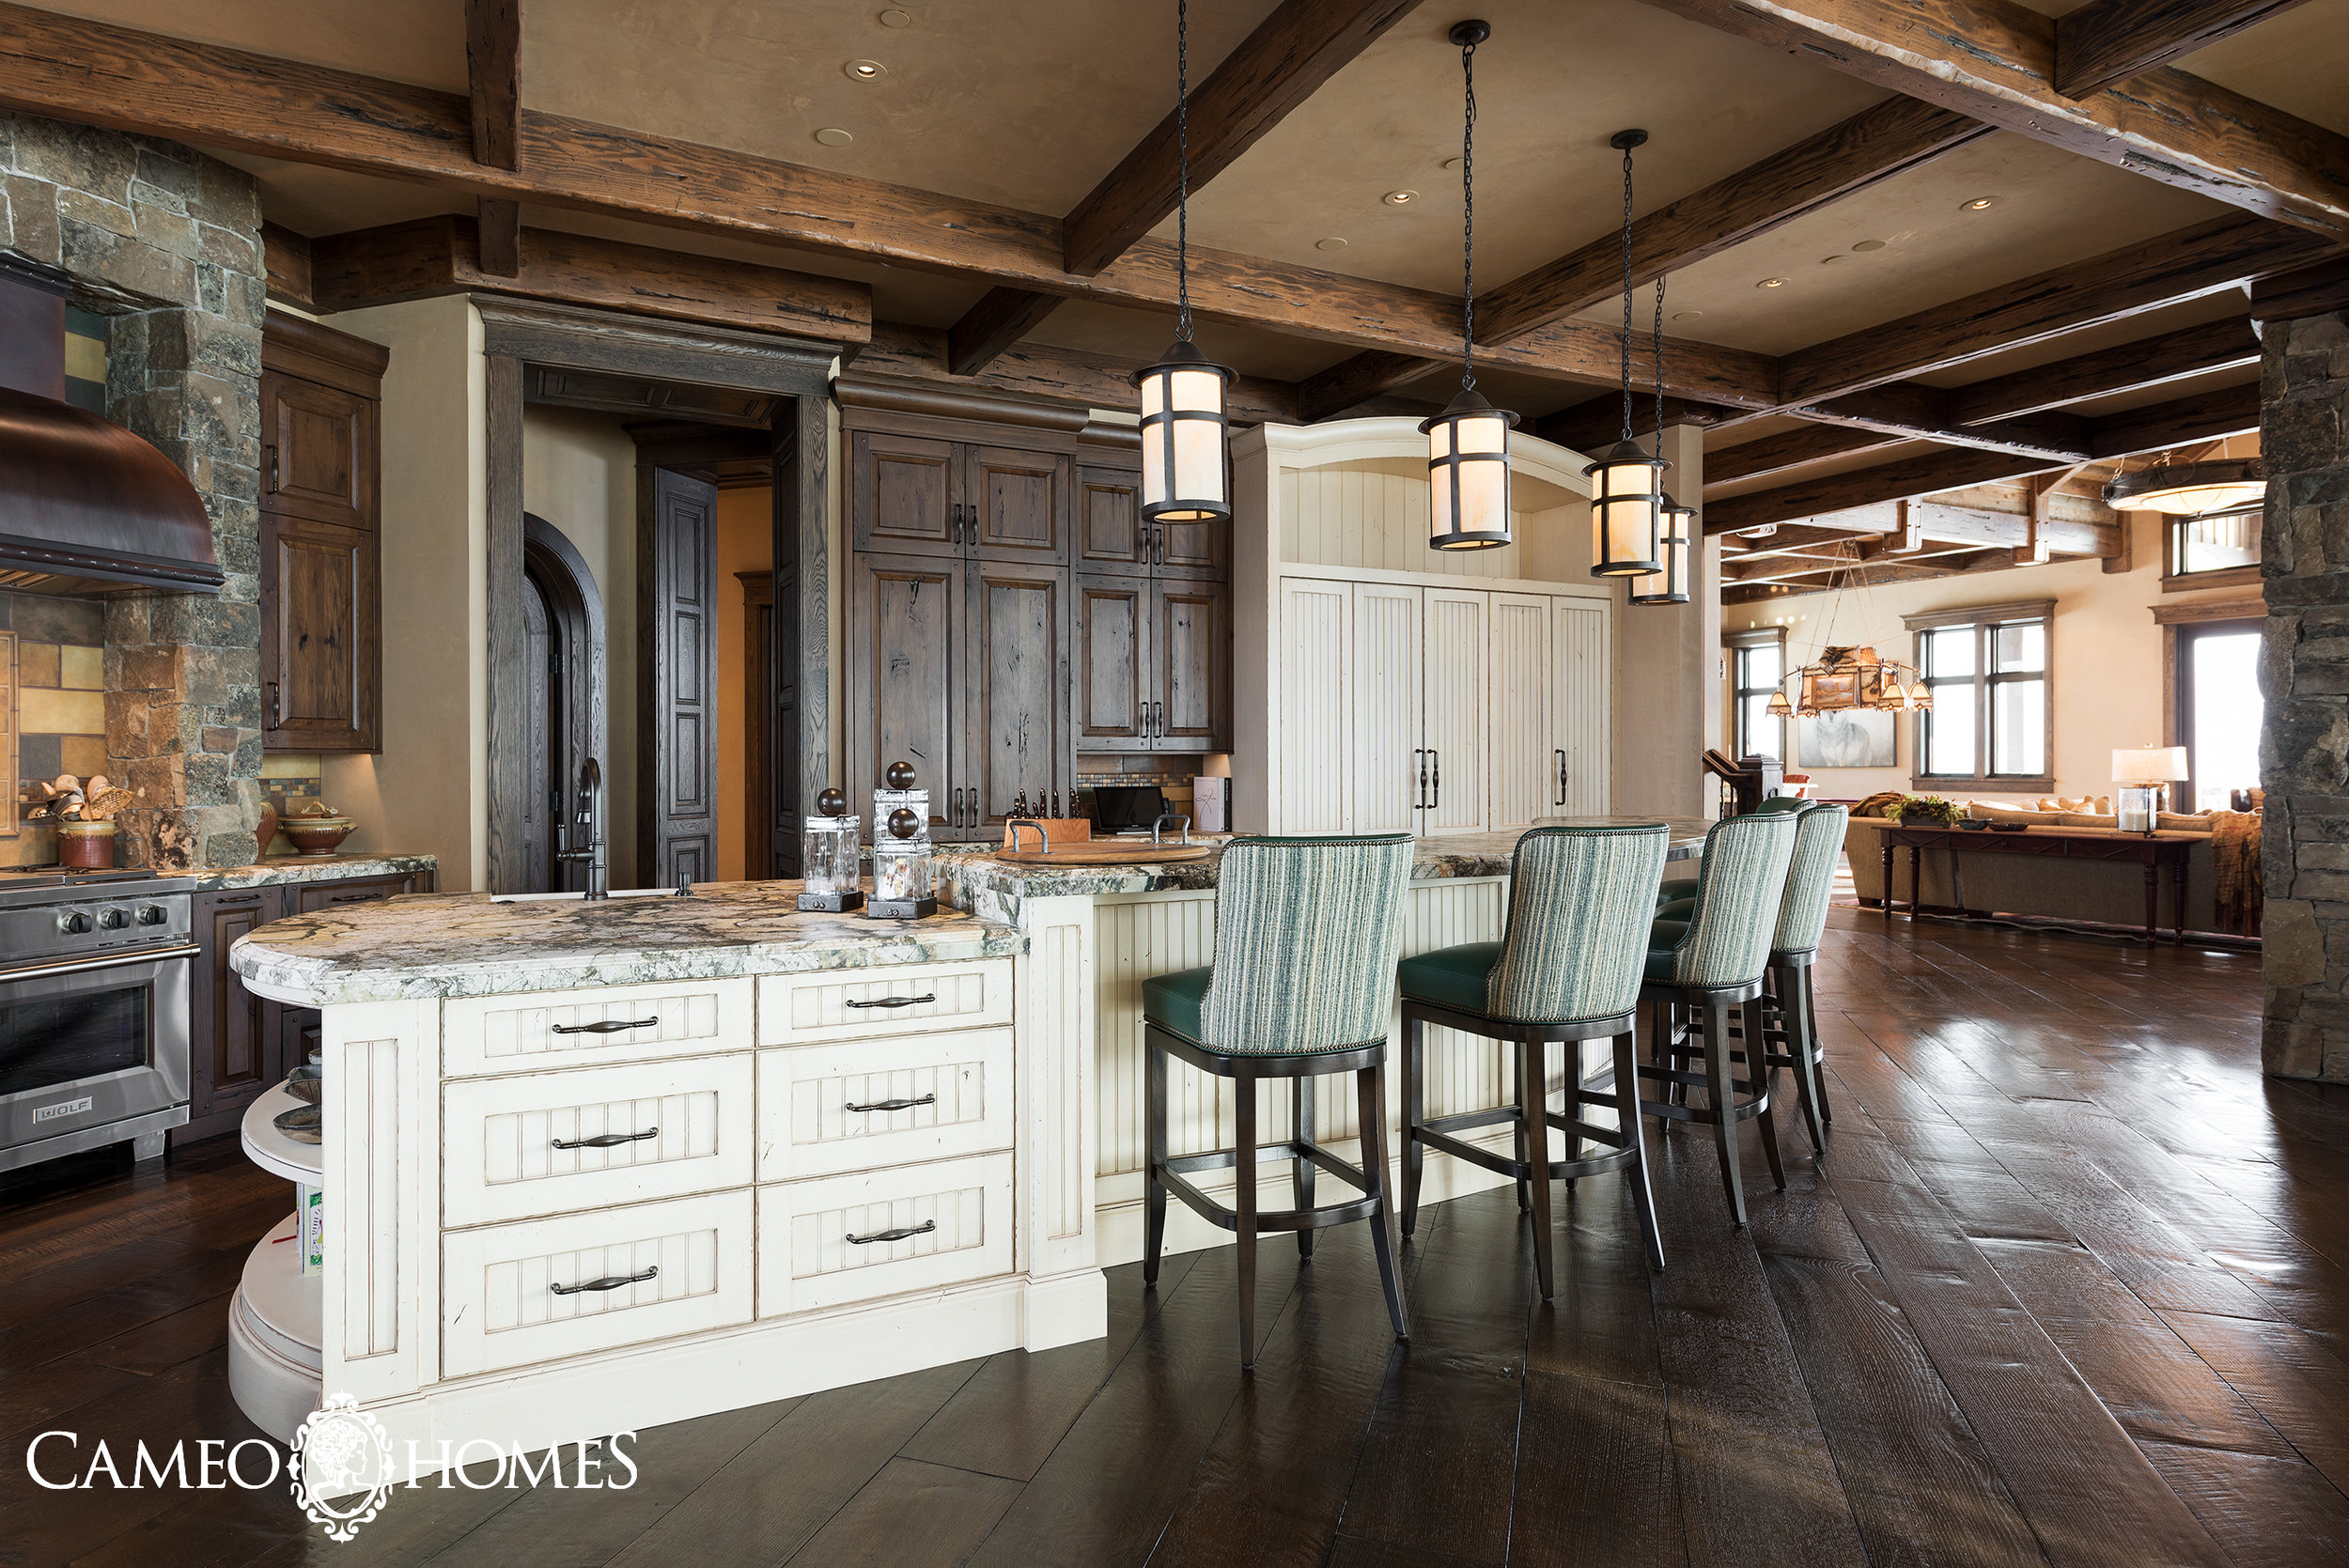 Mountain Rustic Kitchen by Cameo Homes Inc.